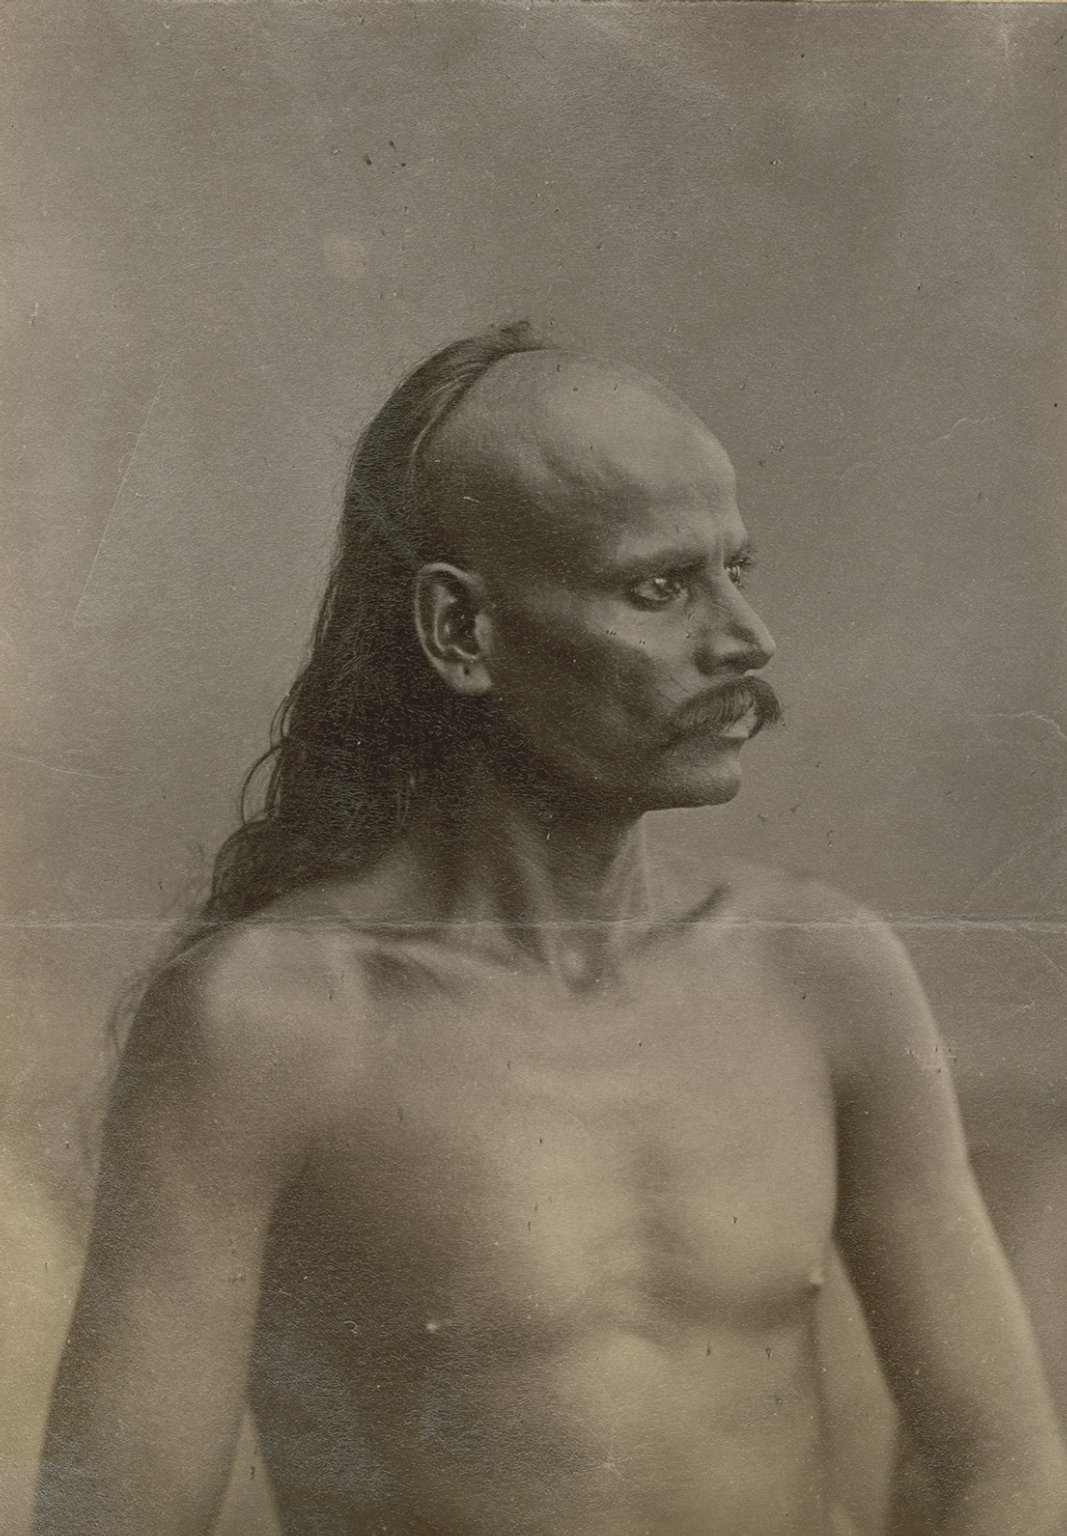 Indian man whose front scalp is shaved, with long hair in back.